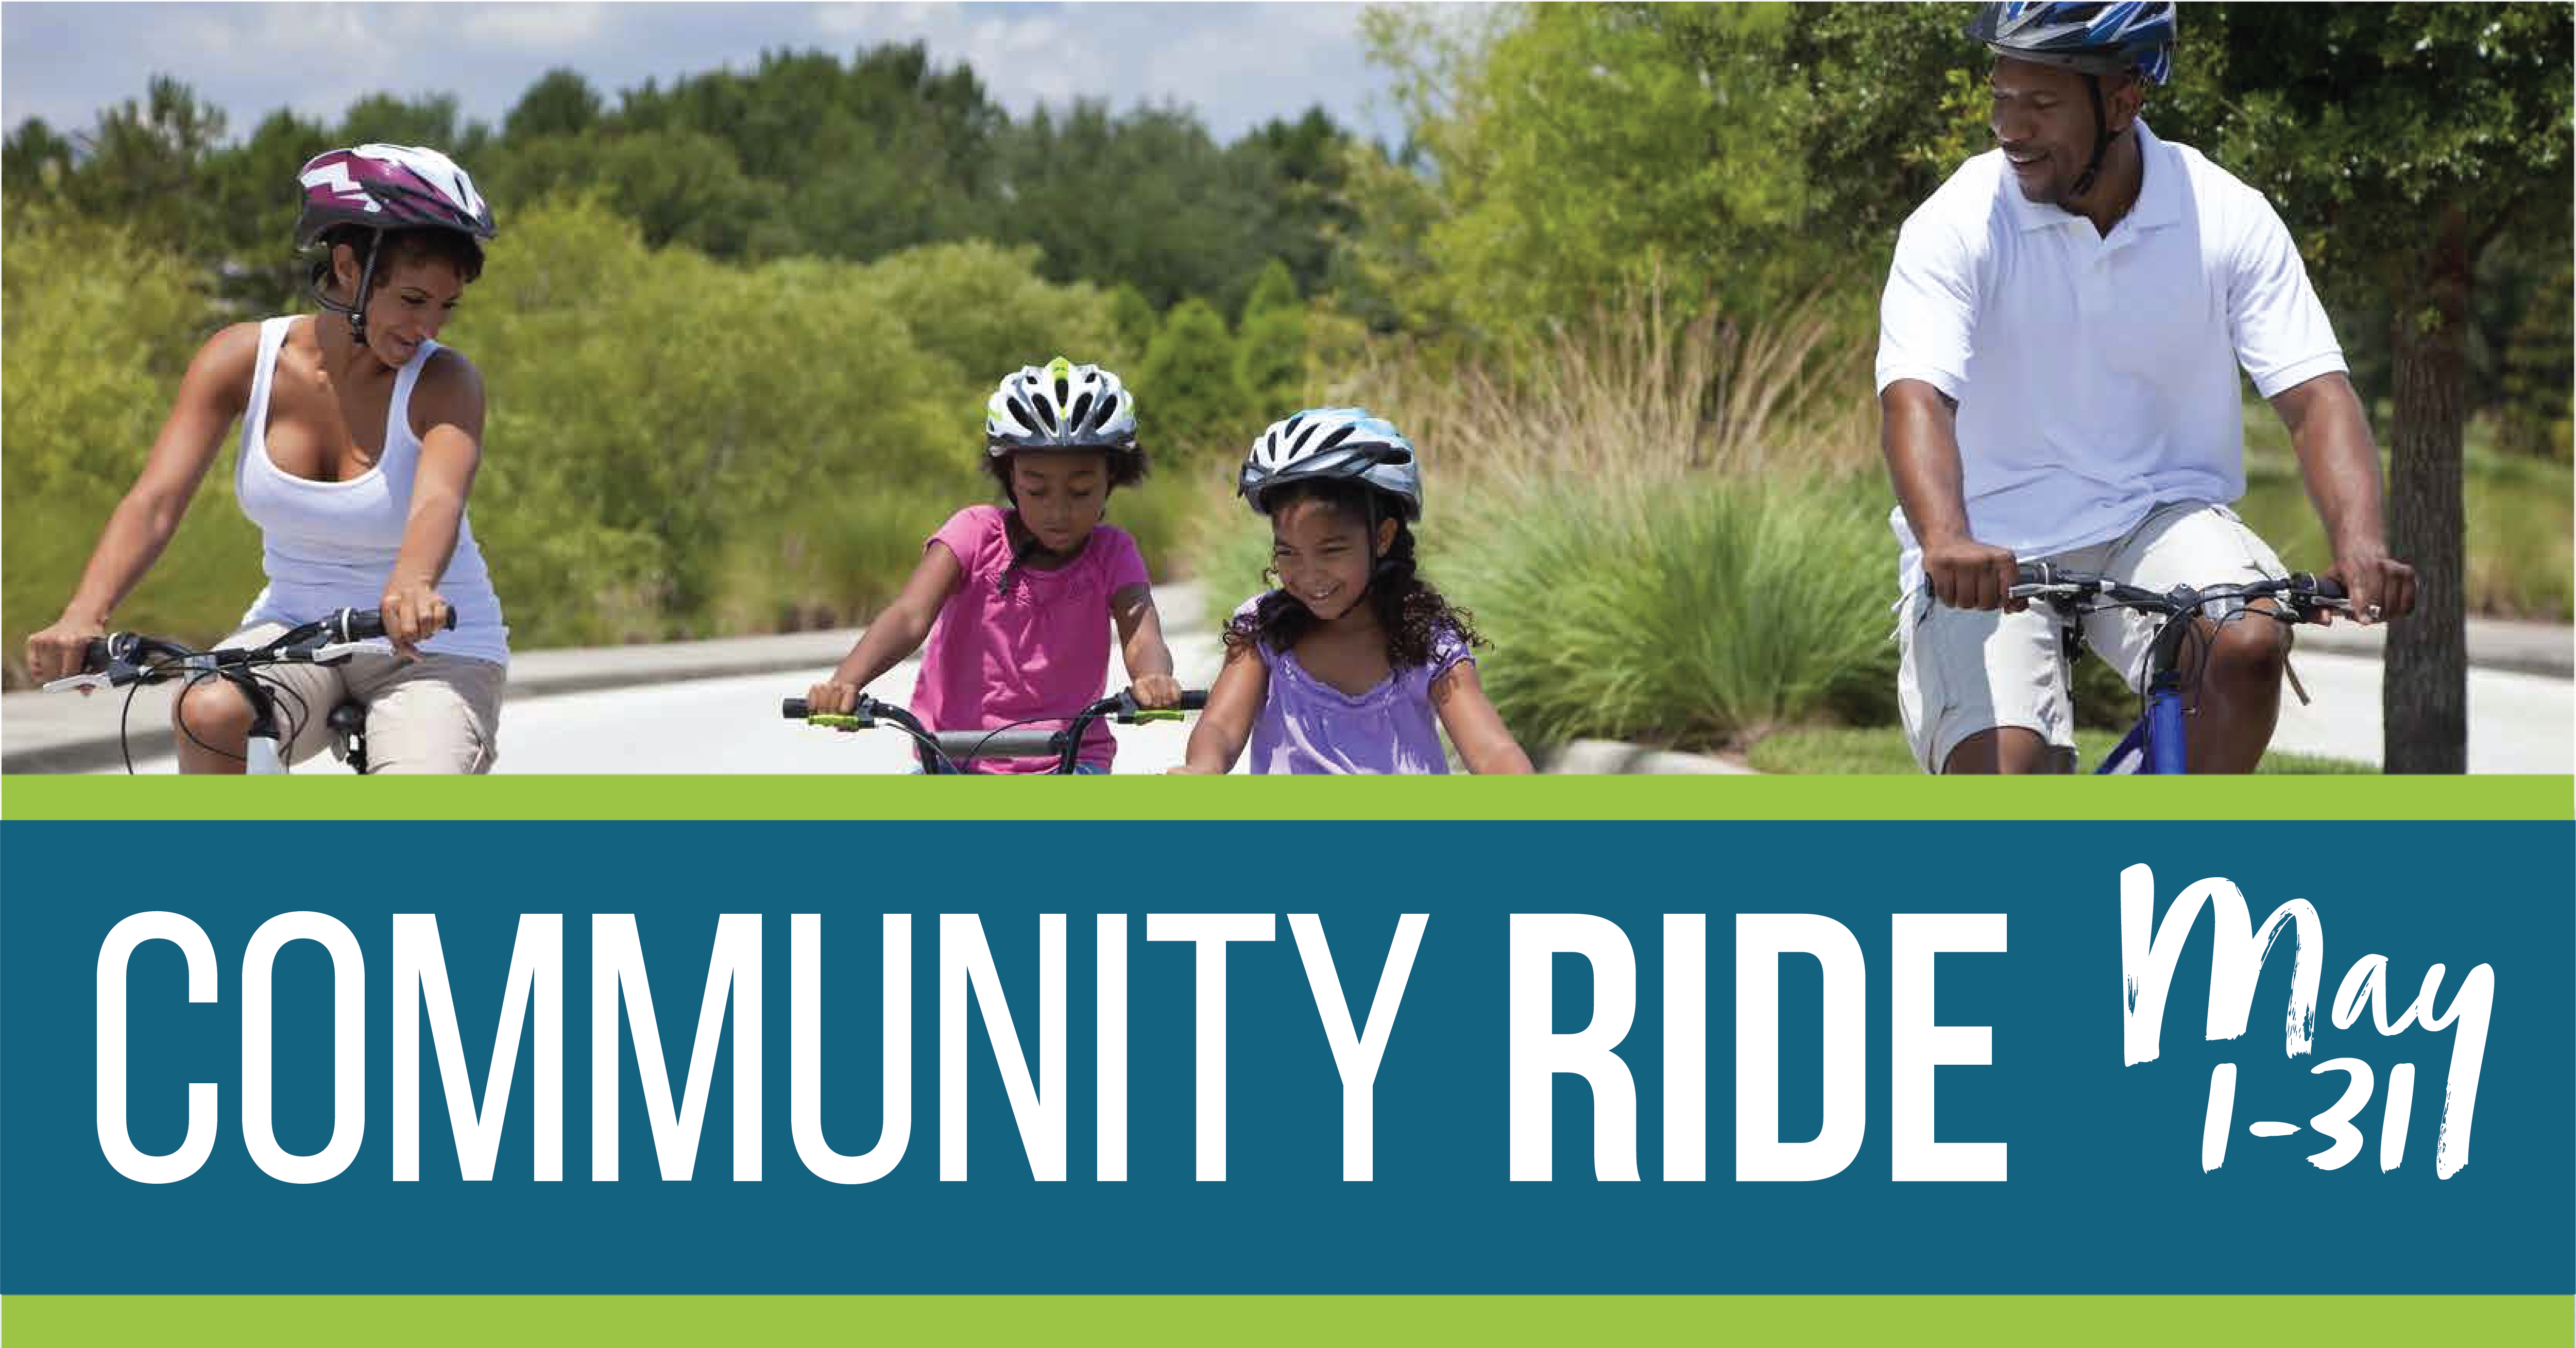 Community Ride Graphic May 2021